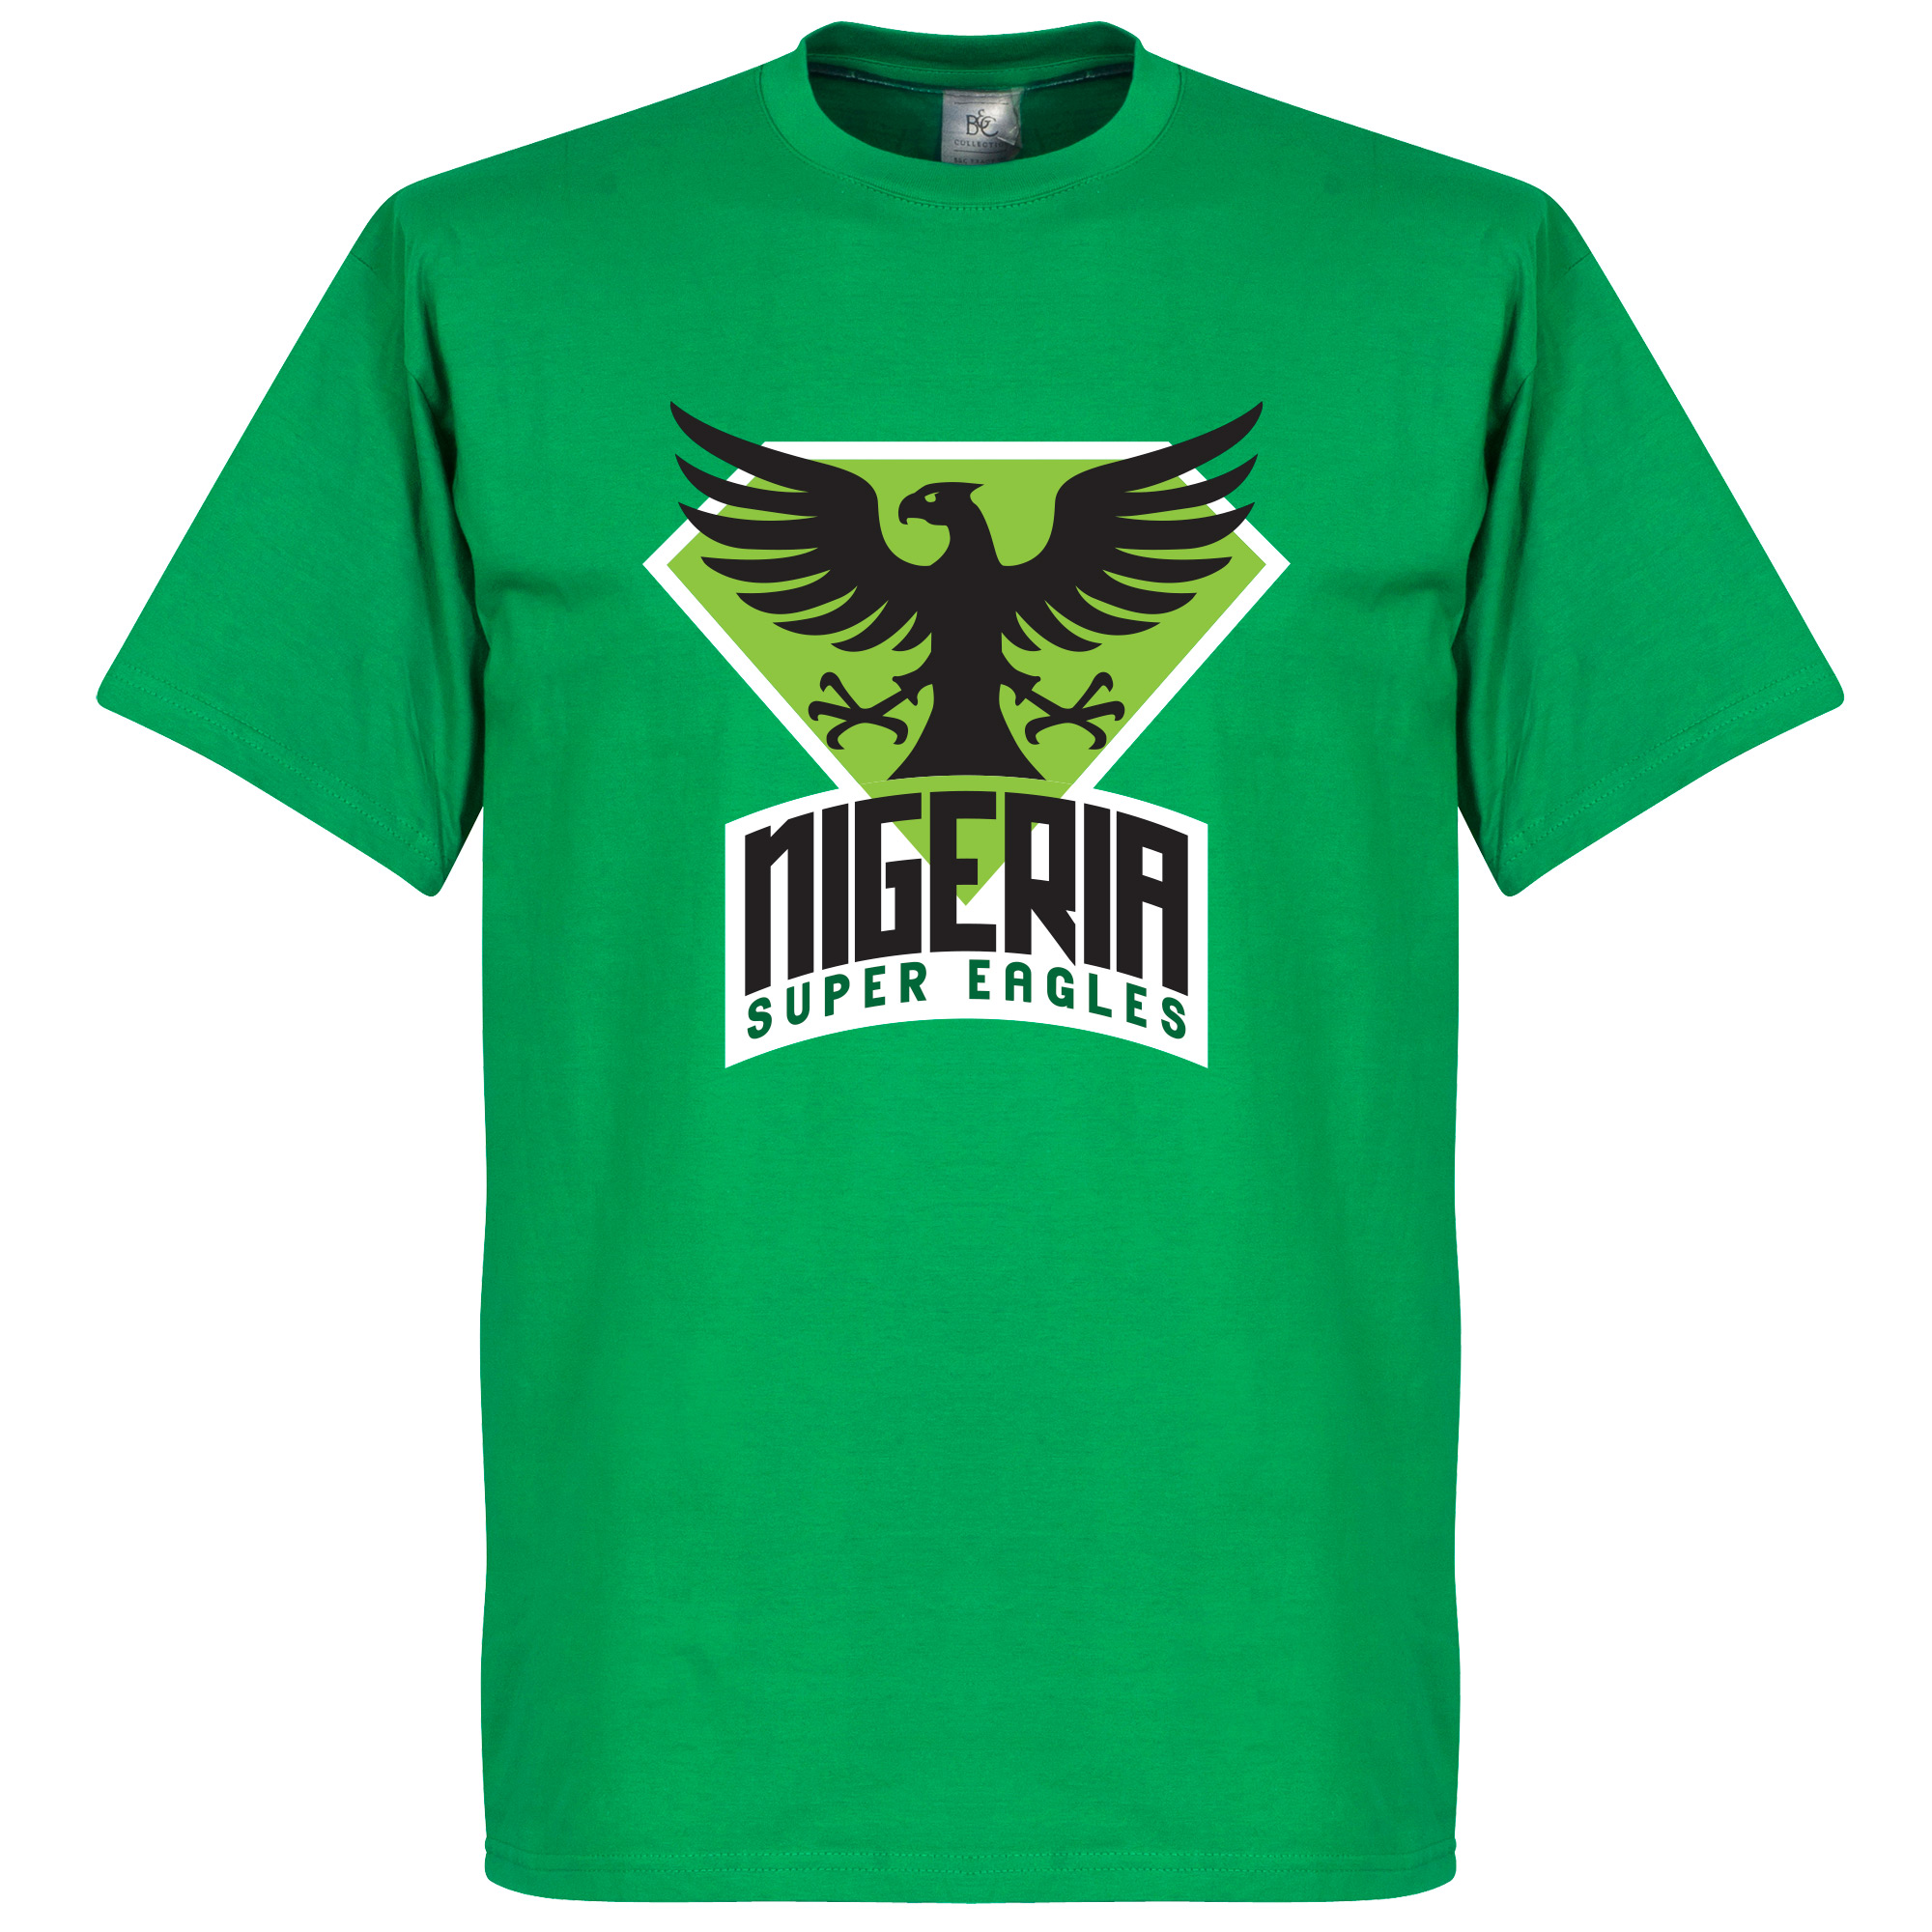 Nigeria Super Eagles Tee - XS